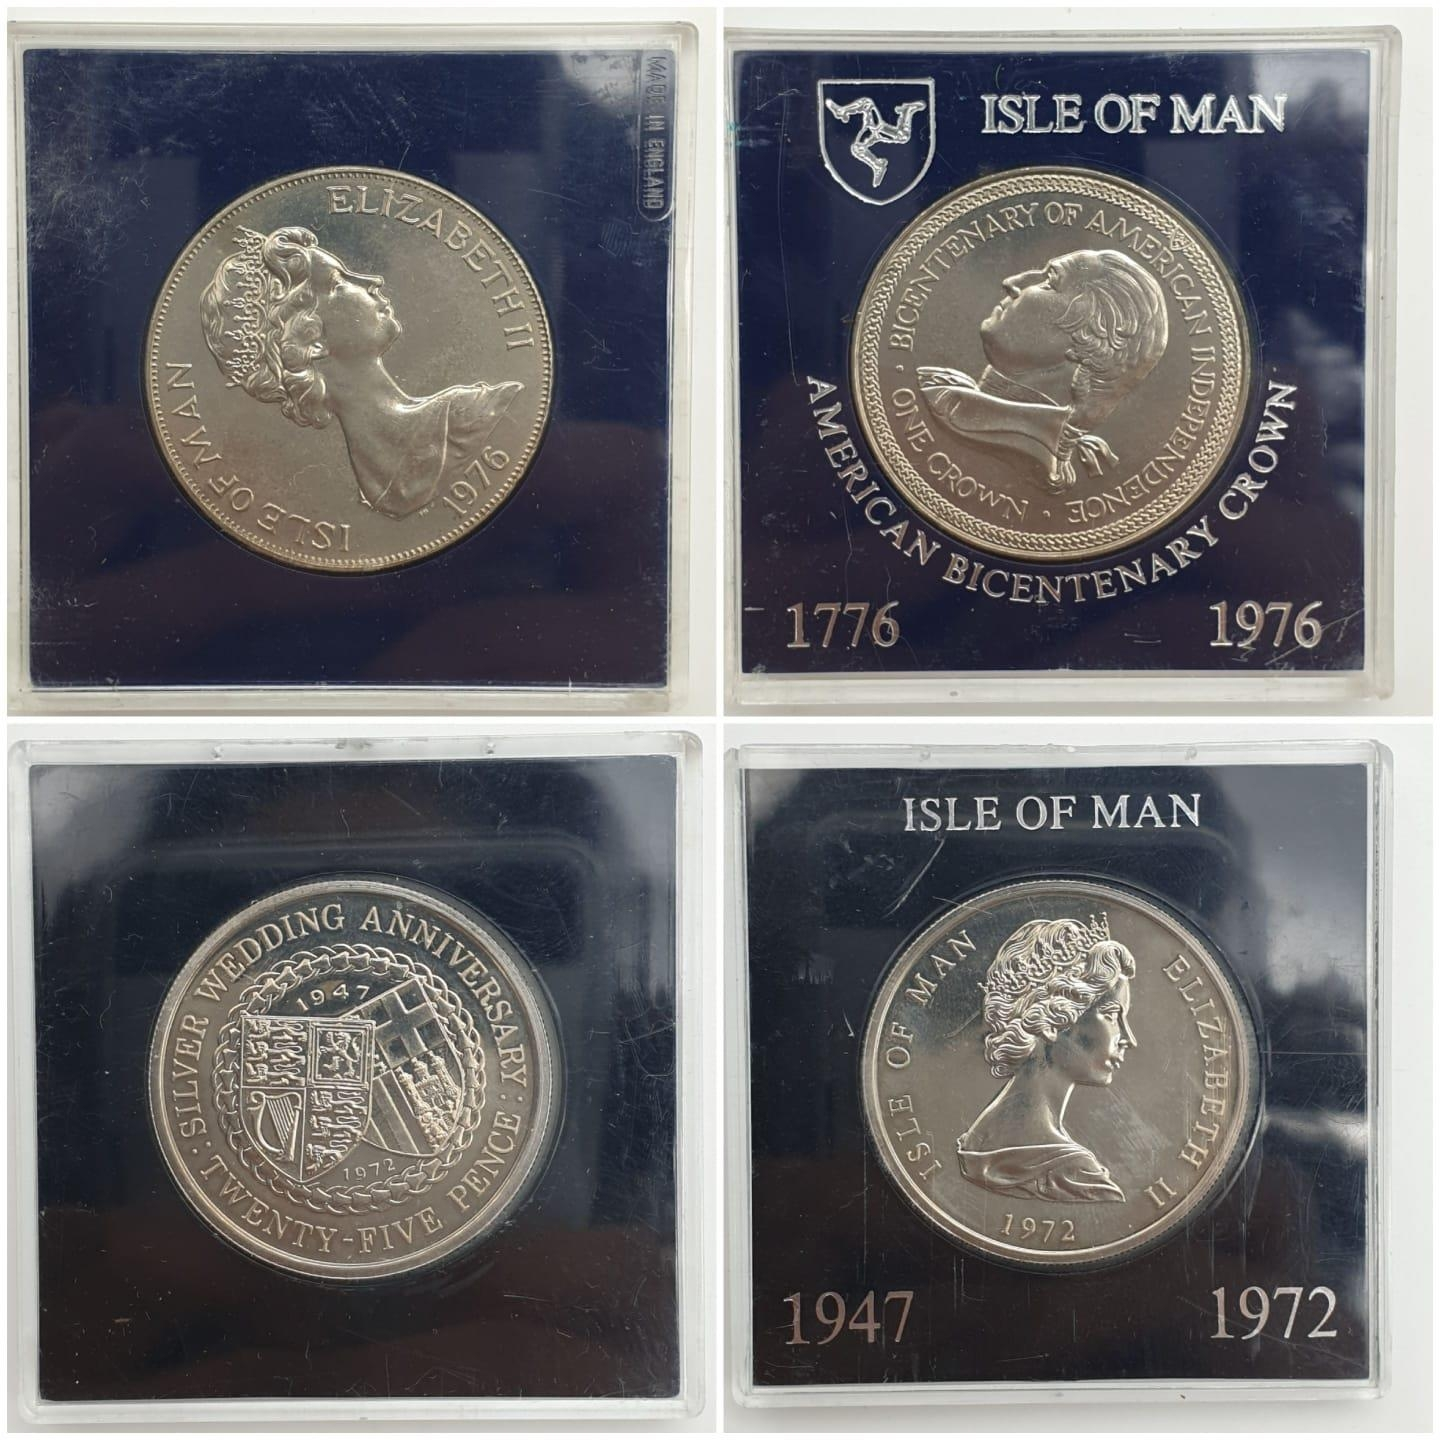 5 Isle of Man Celebratory Crowns. All Silver Plate. - Image 2 of 4